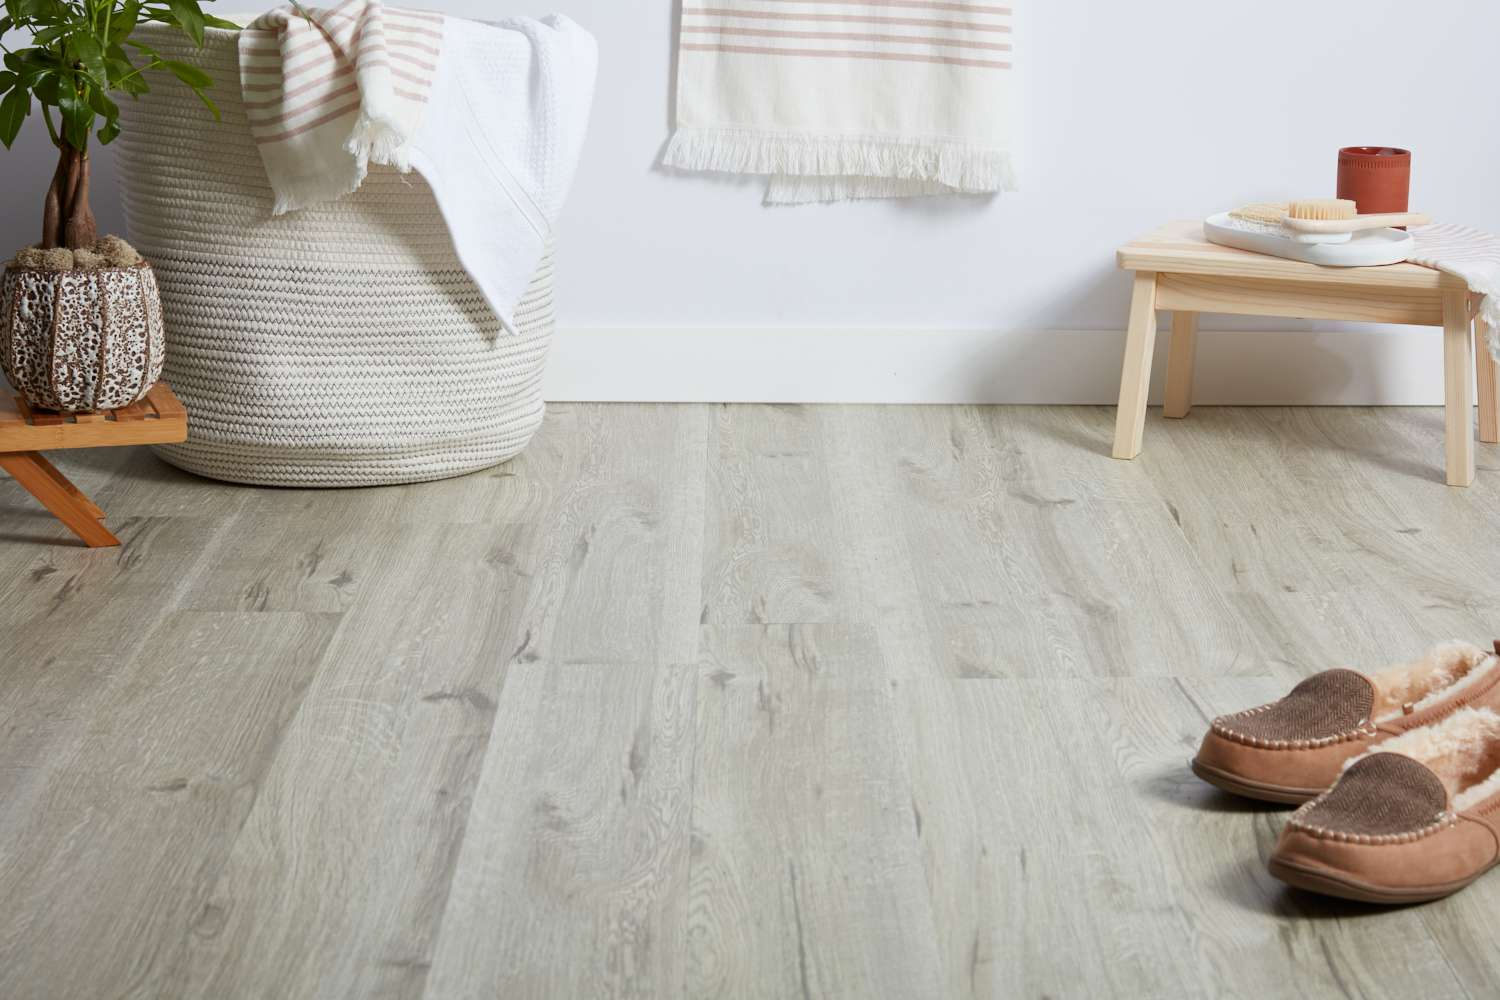 Why A Hybrid Flooring May Be Right For Your Home